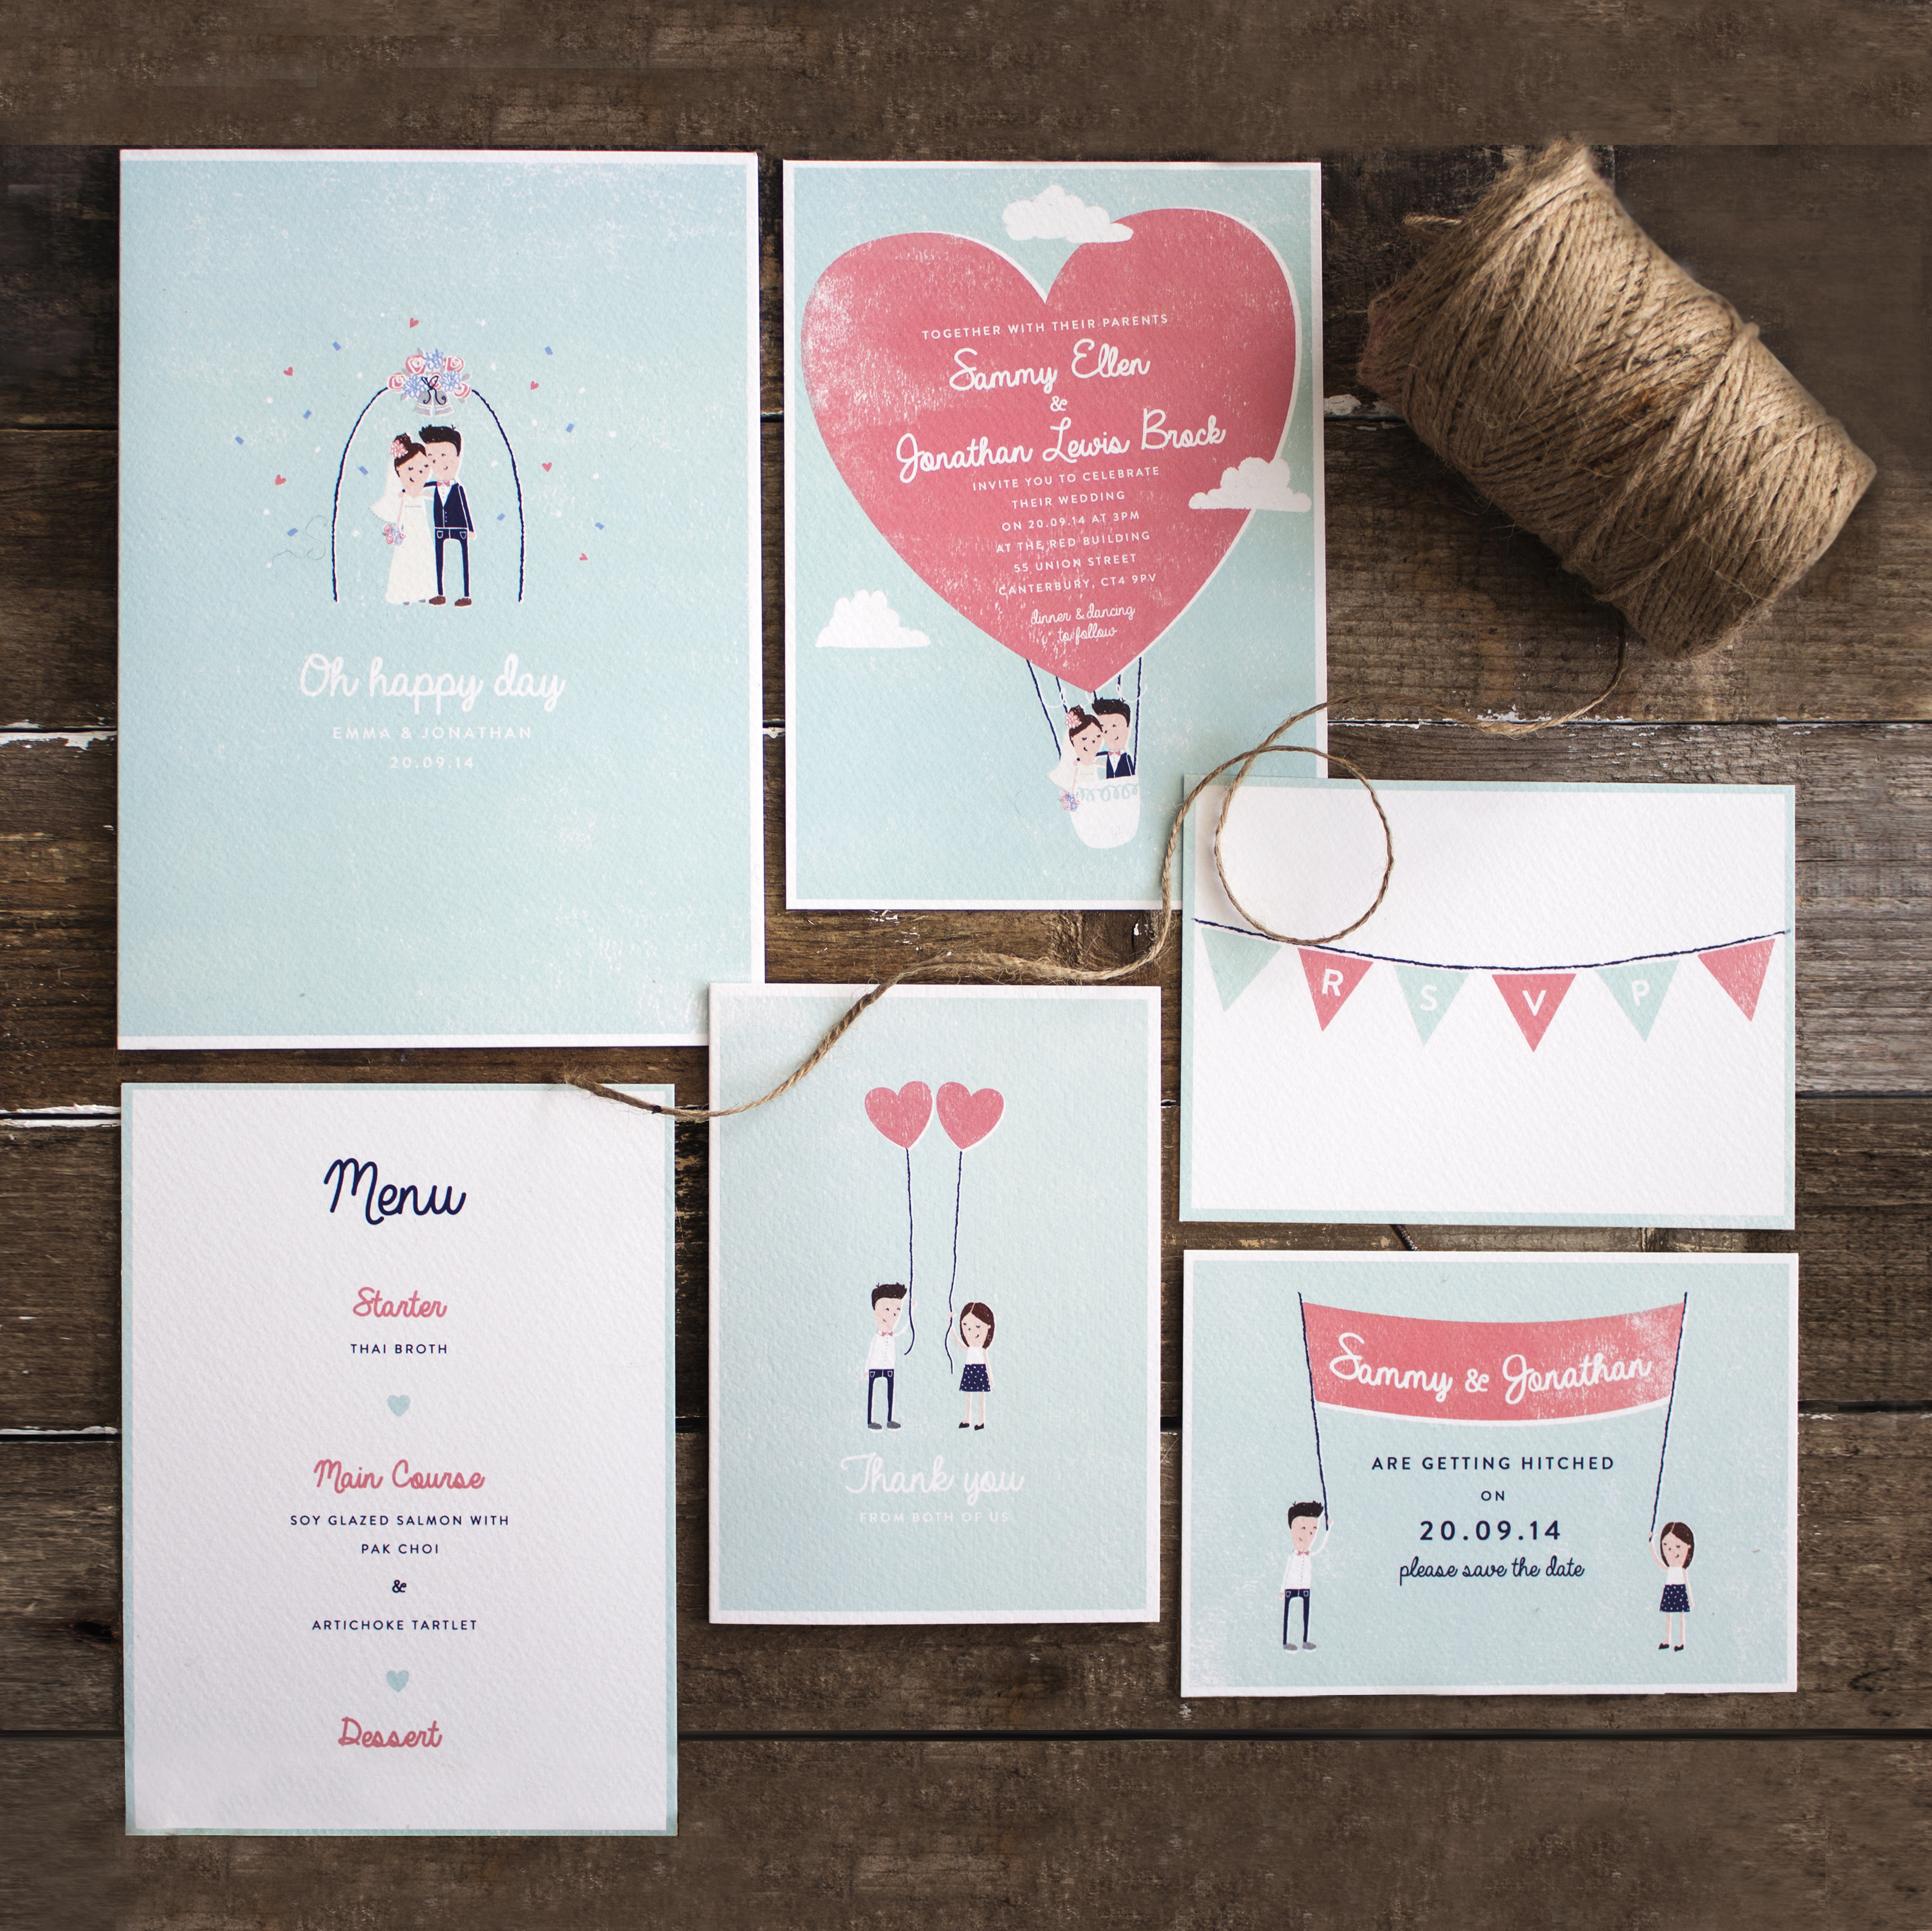 mid week crush let's fly away invites by the lovely drawer Personalised Drawing Wedding Invitations invites with drawing of bride and groom; personalised invites, balloon wedding invites, the personalised drawing wedding invitations